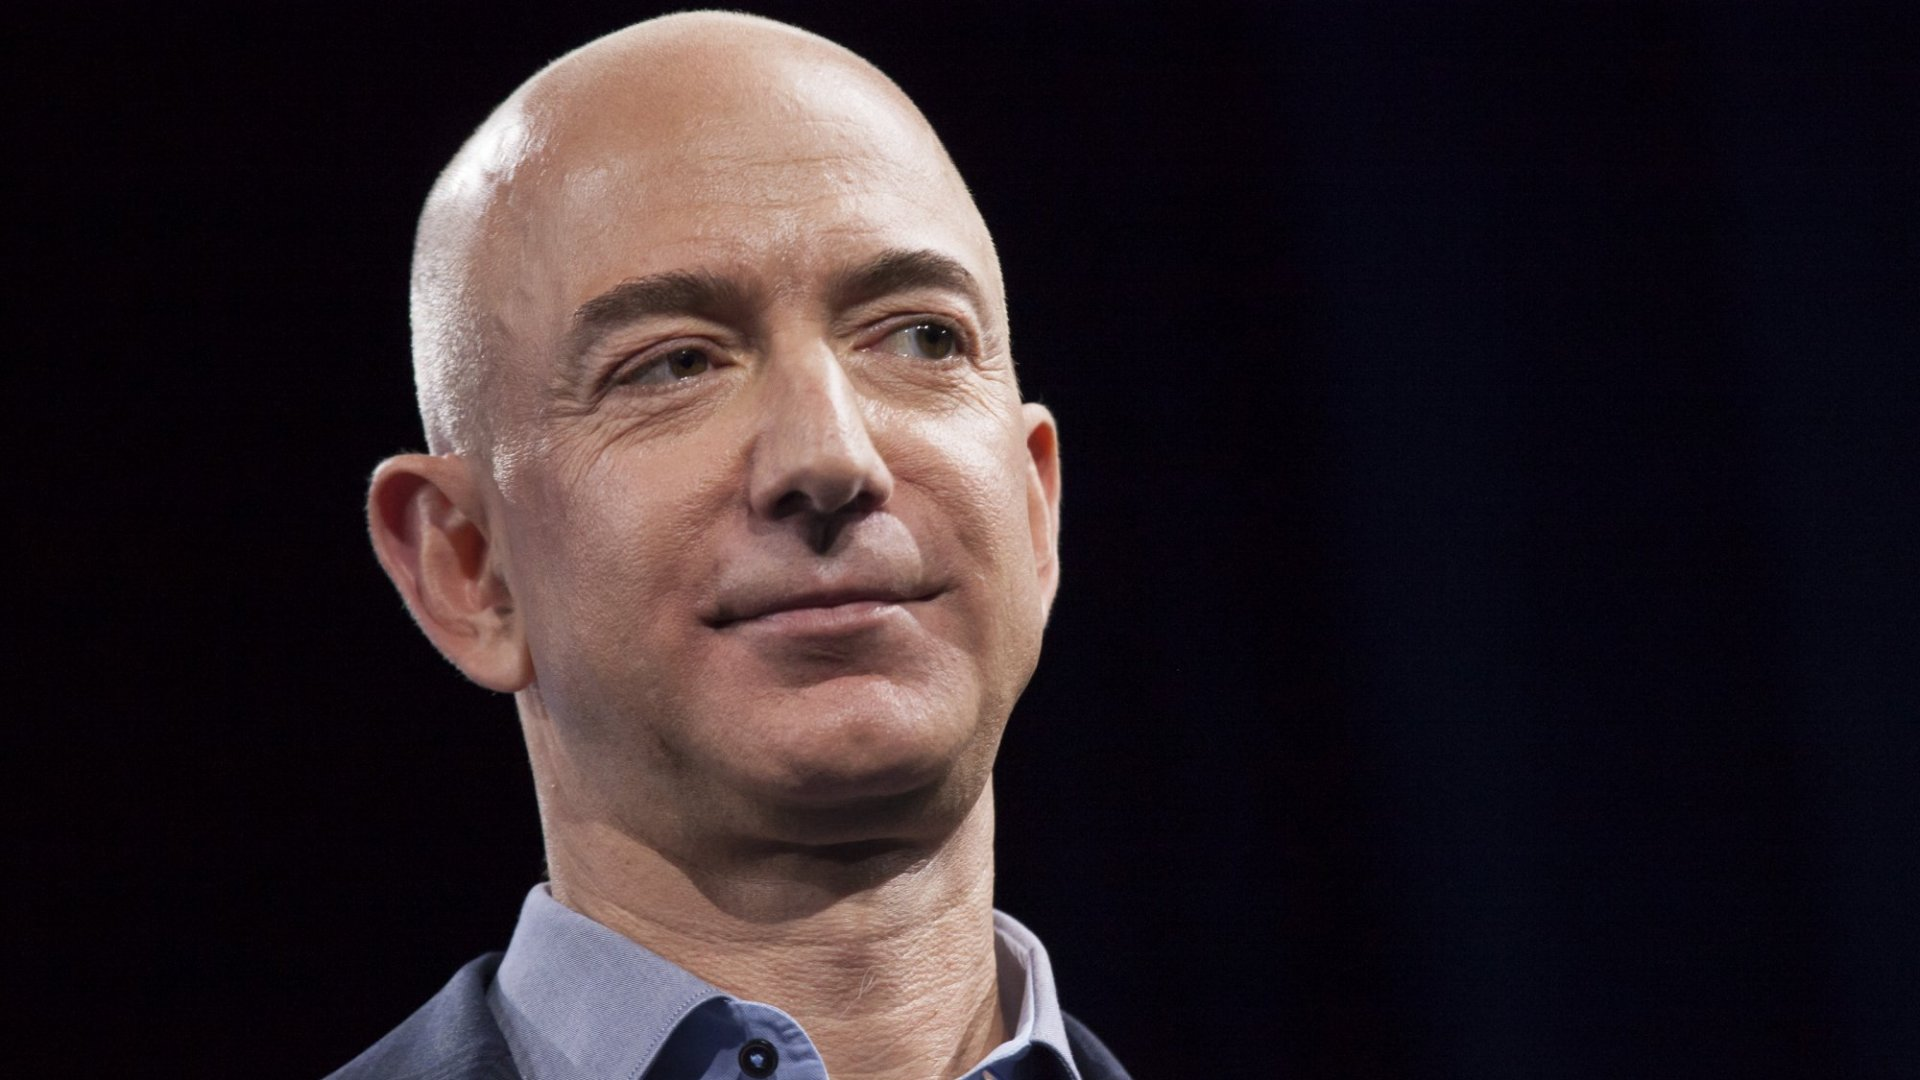 Is Amazon Bad? Or are CEO's Lazy?